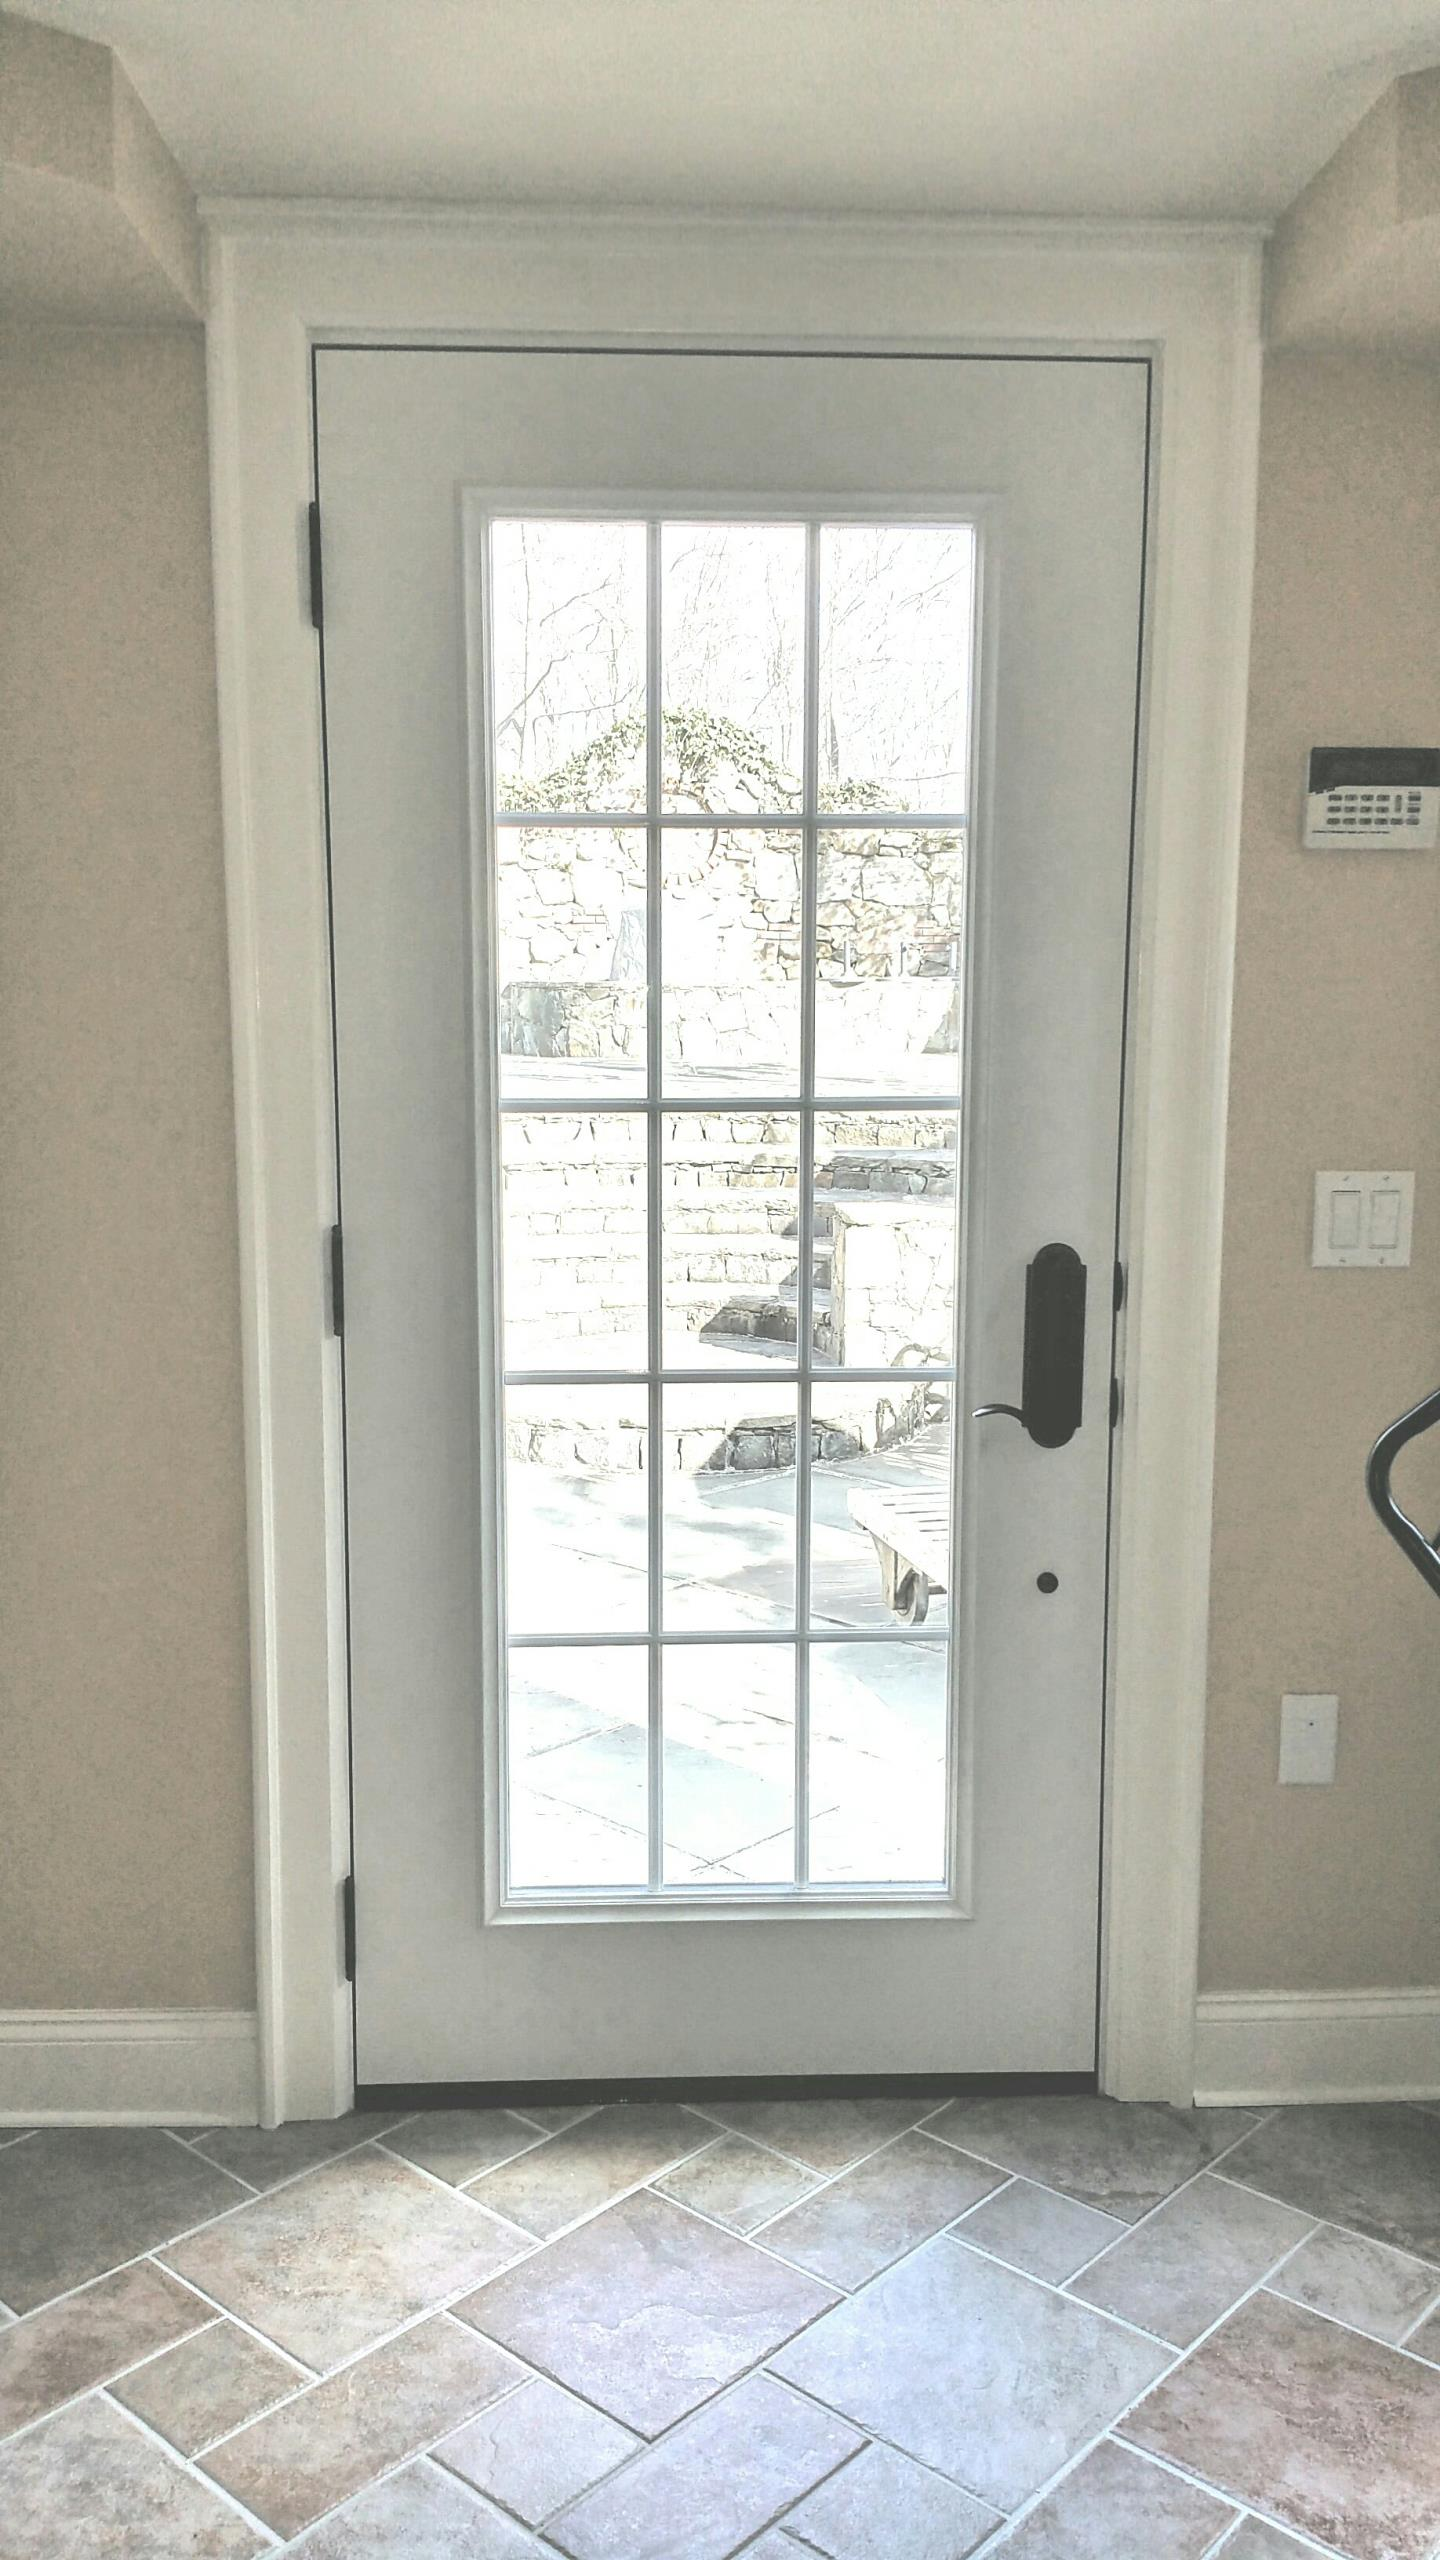 East Greenwich, RI - Renewal by Andersen even installs gorgeous entry doors and patio doors in addition to the best windows on the market. Check out this beauty in East Greenwich!